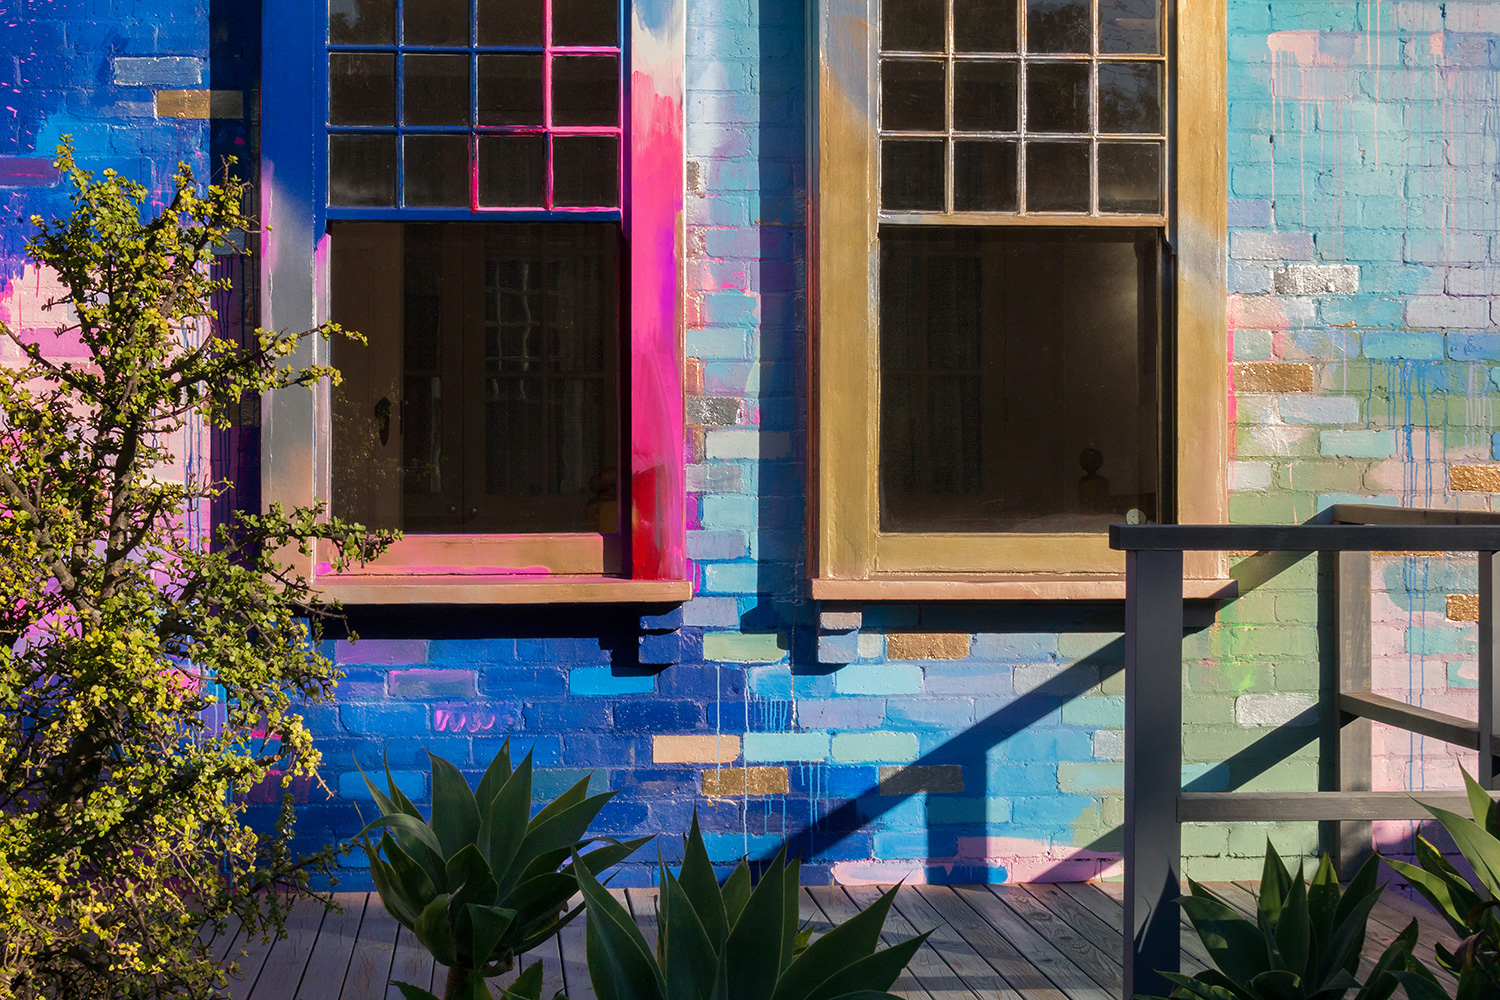 Vibrant abstract exterior mural in a bold color palette. The sun casts shadows onto the canvas, adding another visual dimension.